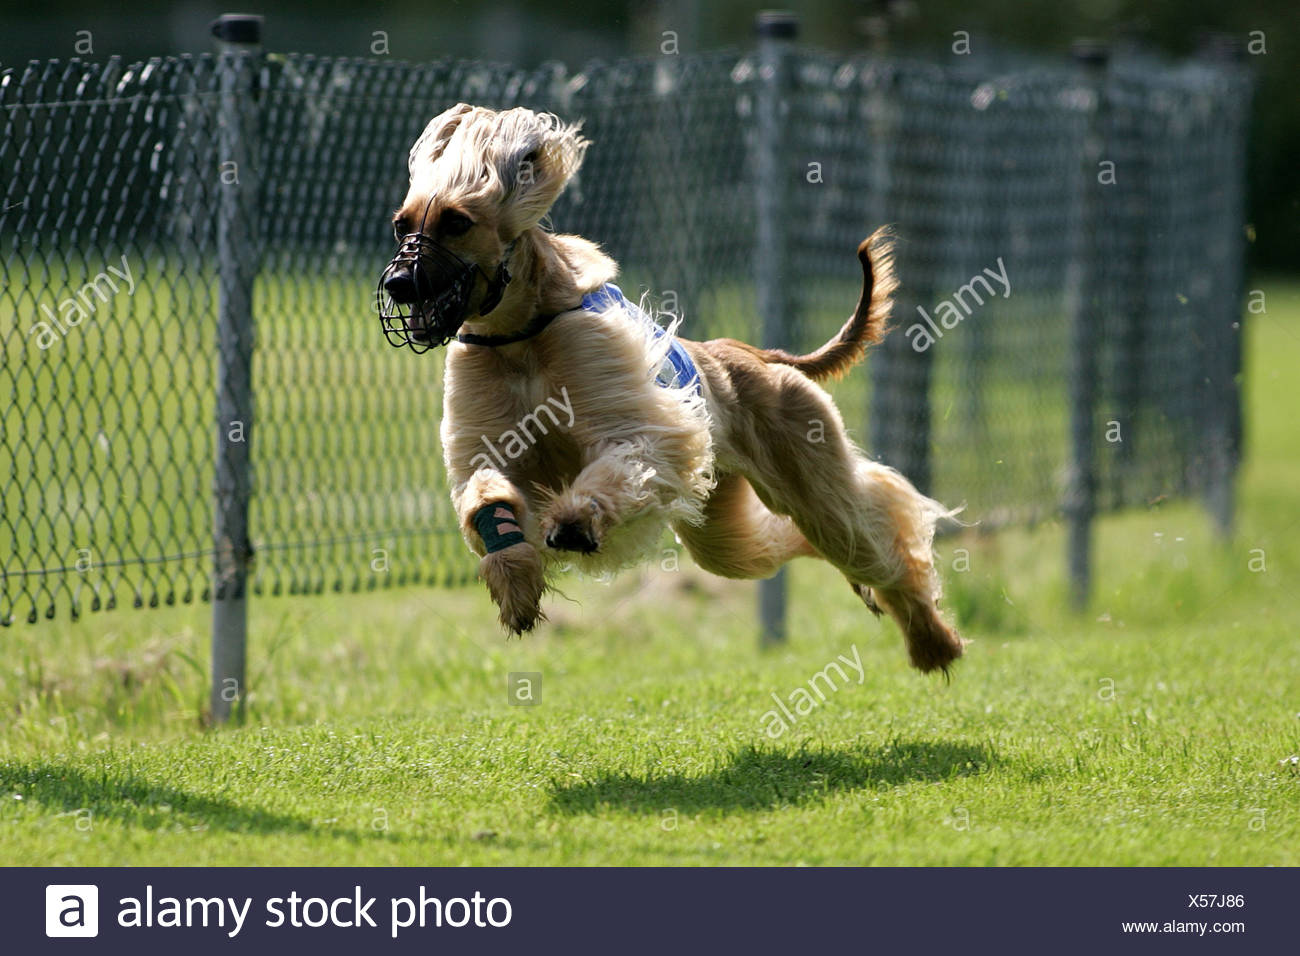 Afghanistan Hound, Afghan Hound (Canis lupus f. familiaris), at race, Germany Stock Photo